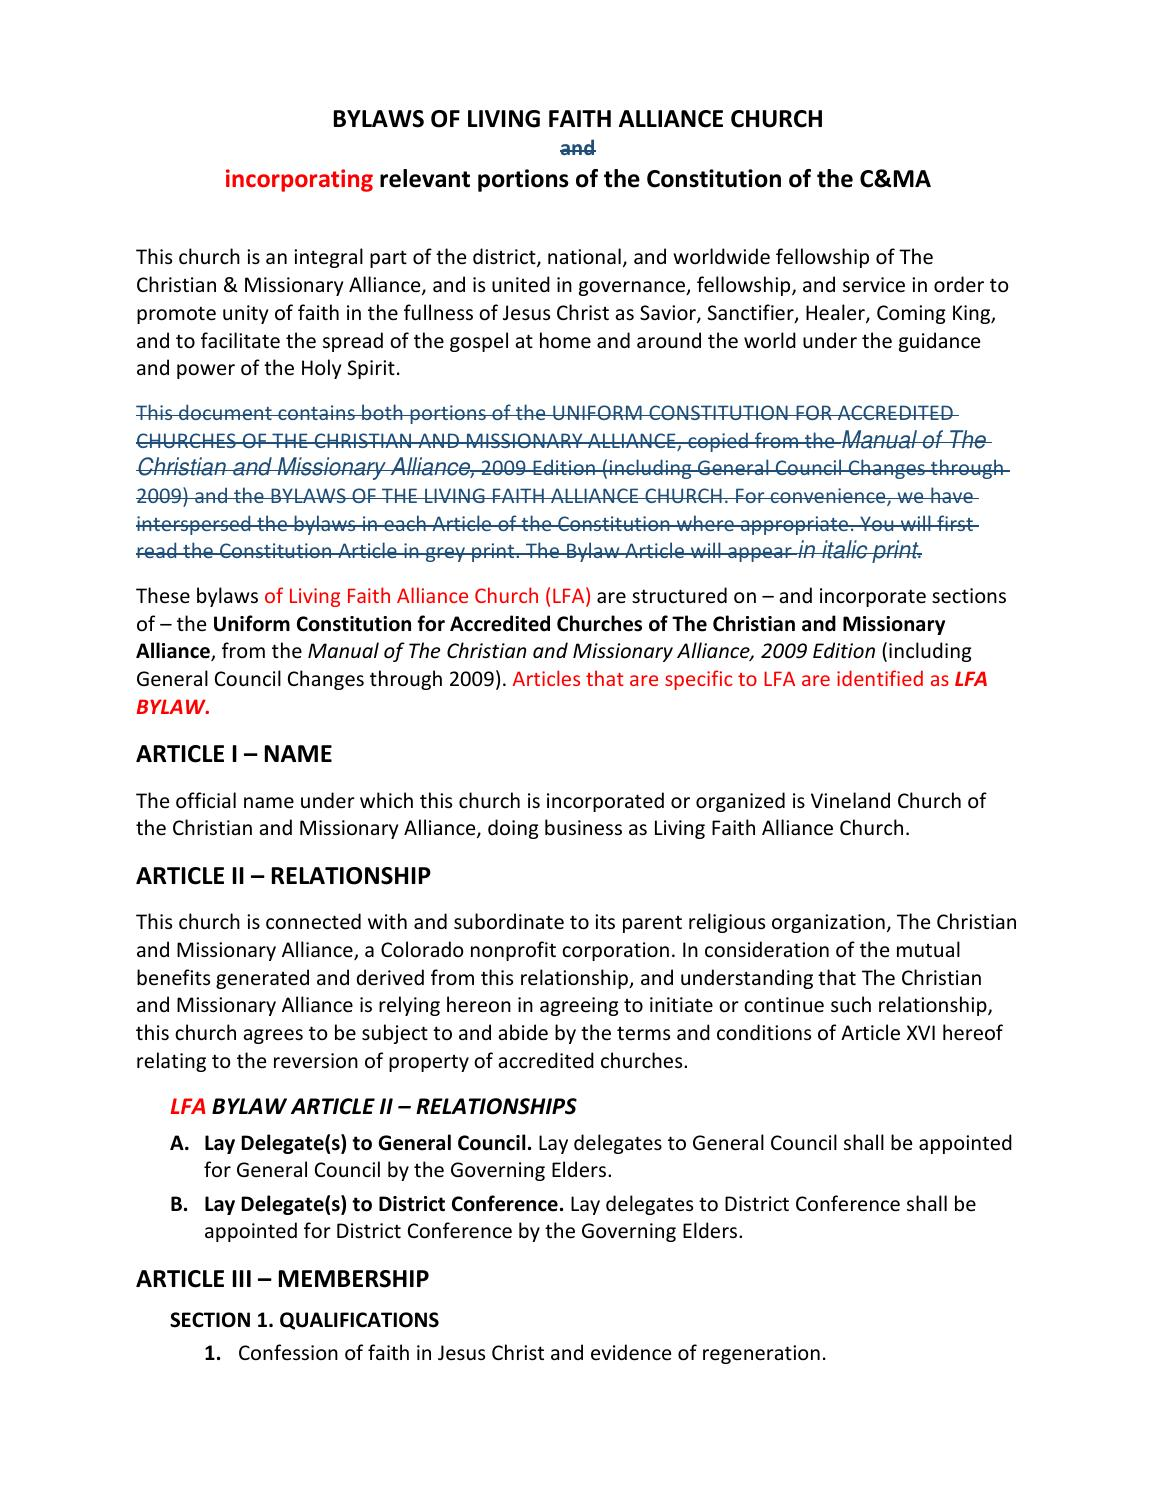 Lfa Bylaws Proposed Revisions 2014 11 13 By Matthew Rudd